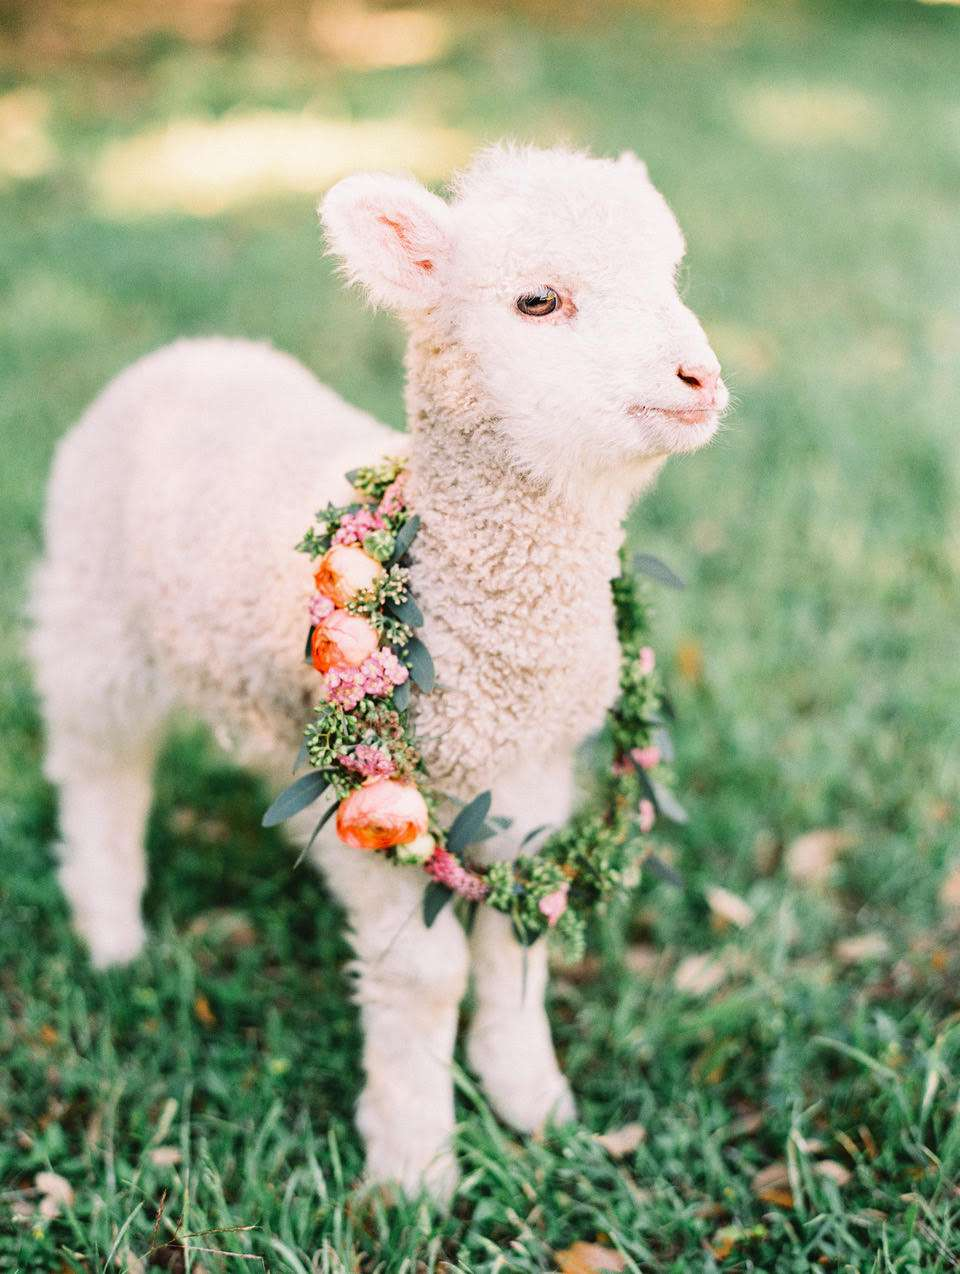 Lamb with a floral wreath around its neck